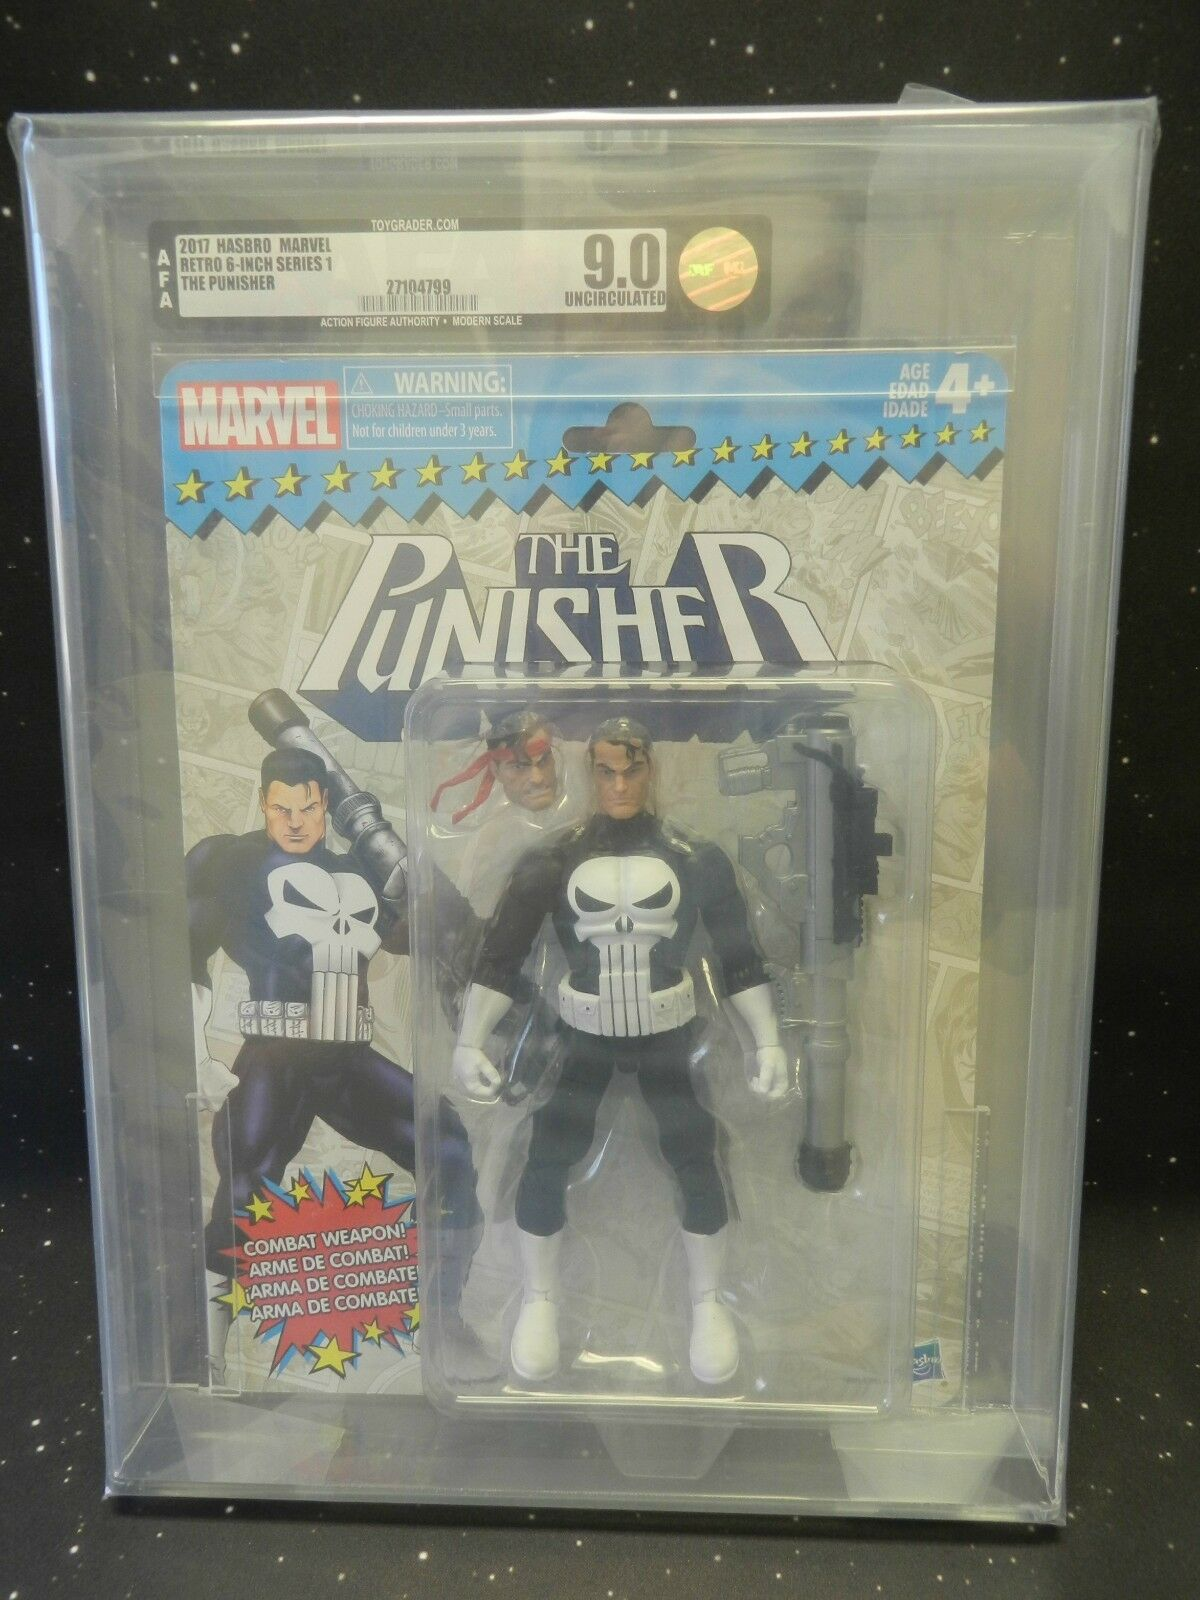 2017 Hasbro Marvel Retro 6 Inch Series 1 The Punisher AFA U9.0